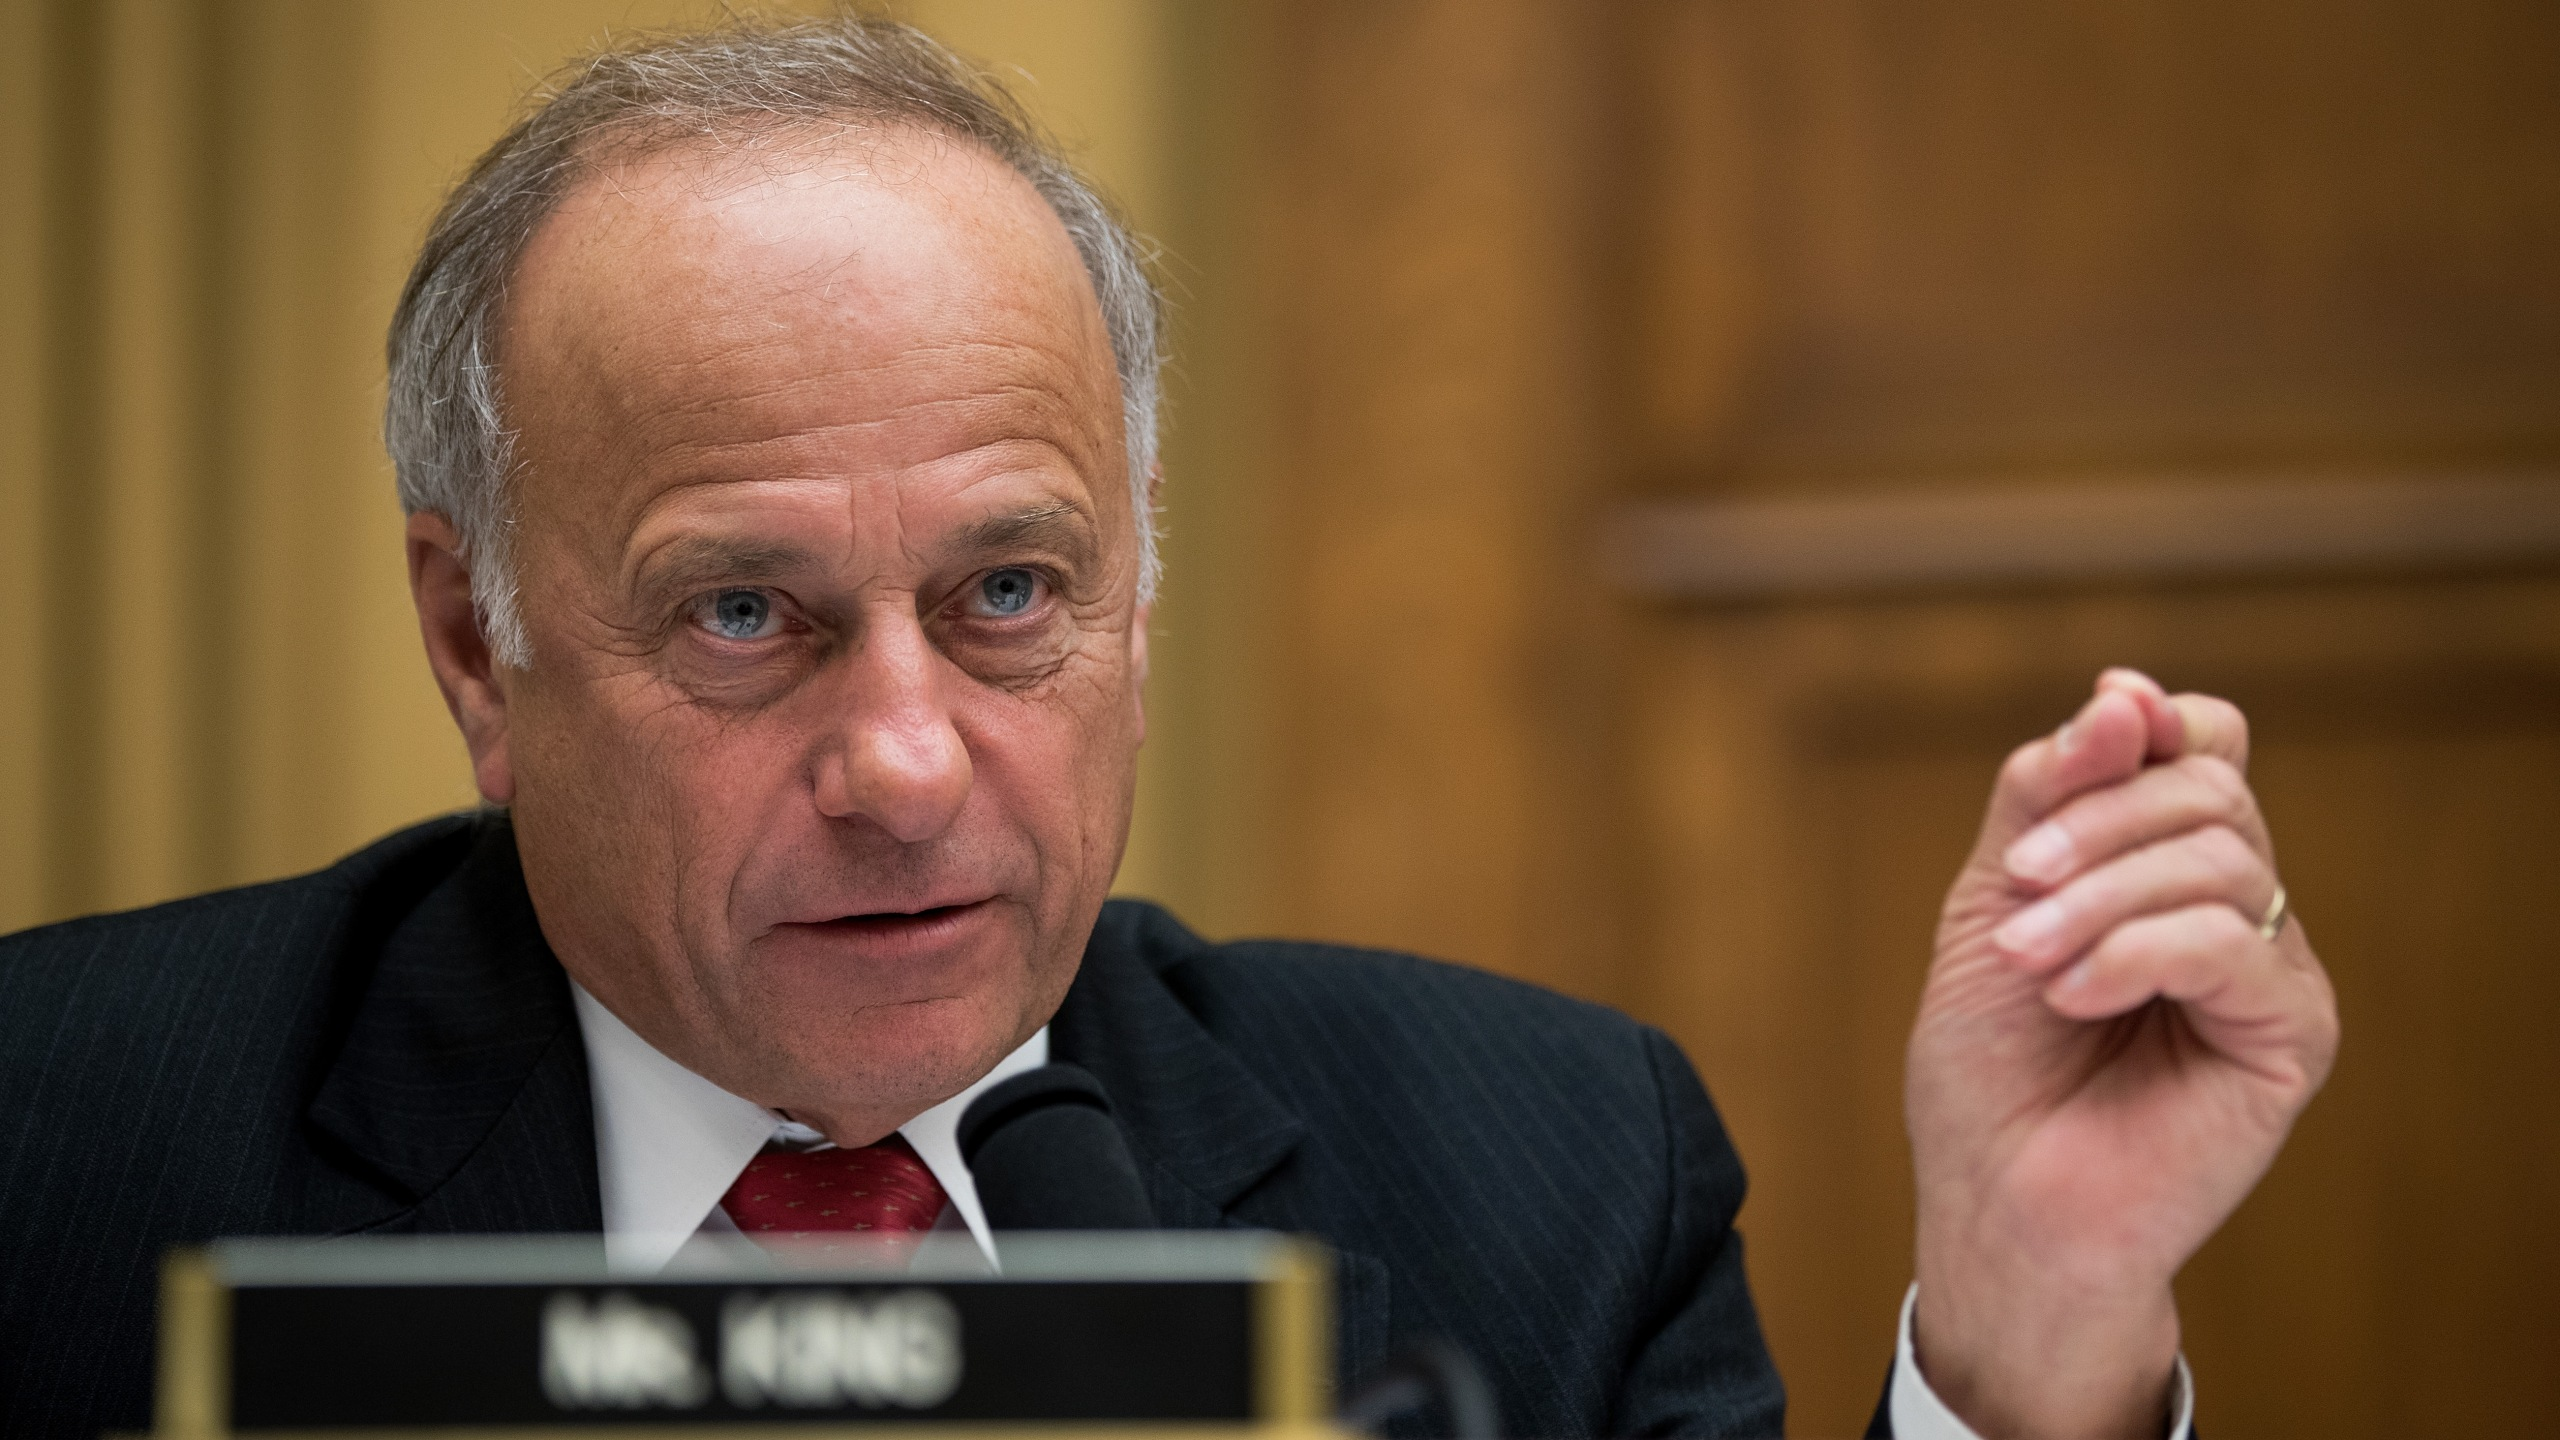 Rep. Steve King (R-IA) questions witnesses during a House Judiciary Committee hearing concerning the oversight of the U.S. refugee admissions program, on Capitol Hill, October 26, 2017 in Washington, DC. (Credit: Drew Angerer/Getty Images)